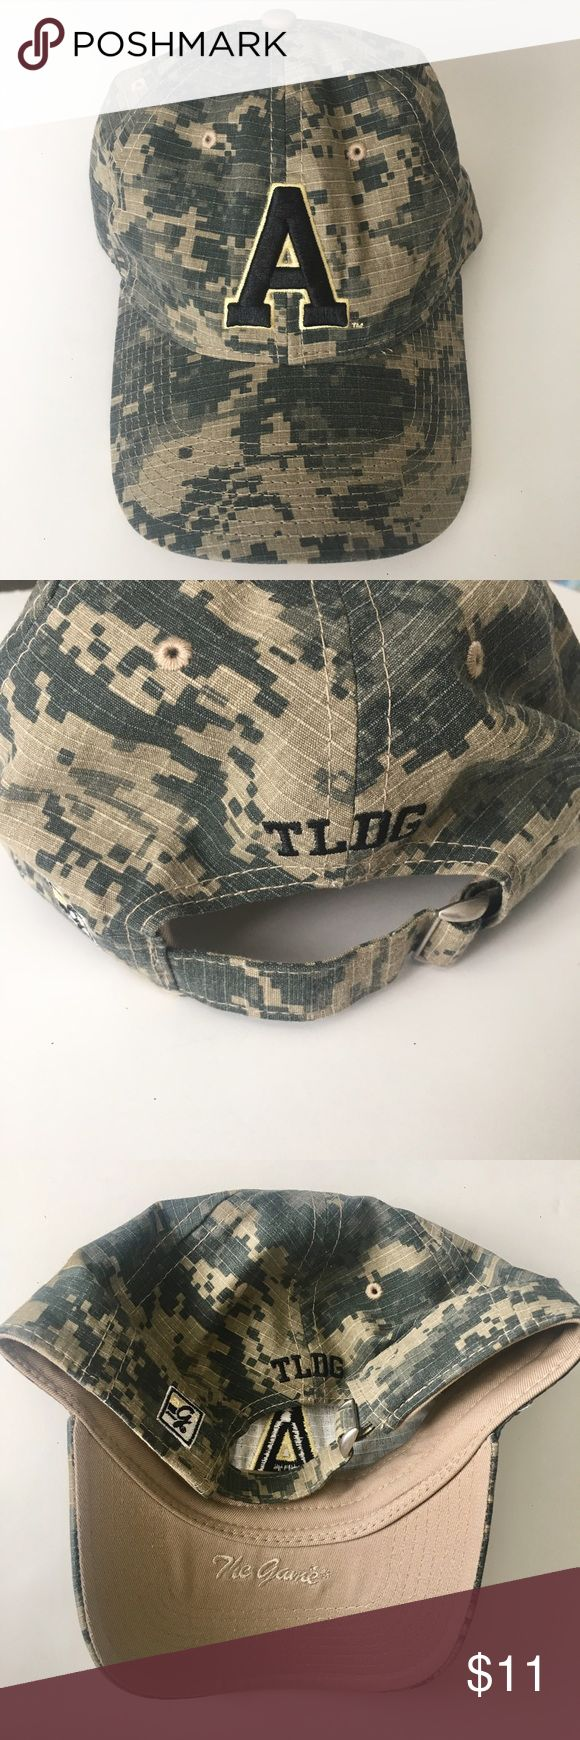 """NWOT """"A"""" Camouflage Adjustable Hat NWOT """"A"""" Camouflage Adjustable Hat  •New without tags •Adjustable back  Ships same or next day from a Smoke-Free home! Accessories Hats"""